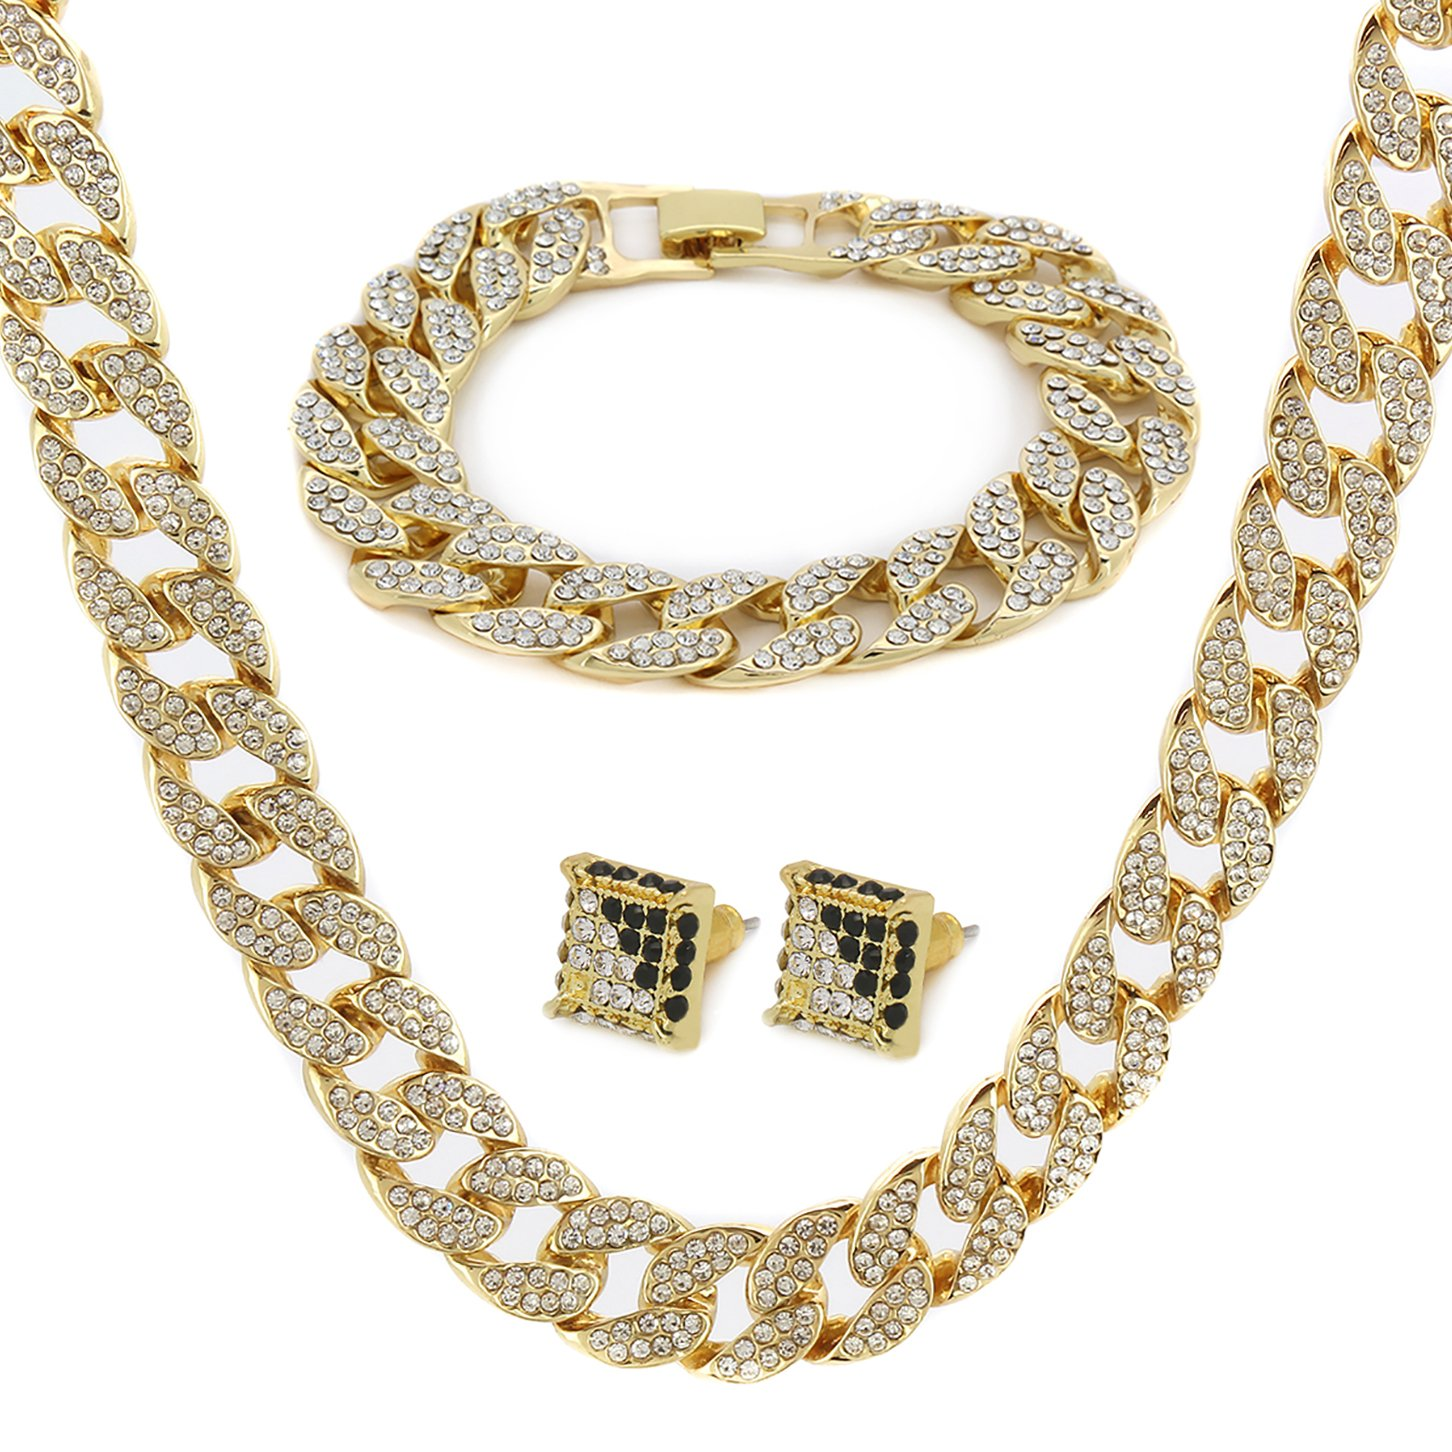 53a57769a333e 14k Gold Finish Fully Iced Out Hip Hop Cz Chain & Bracelet Mens Miami Cuban  Necklace: Amazon.in: Jewellery